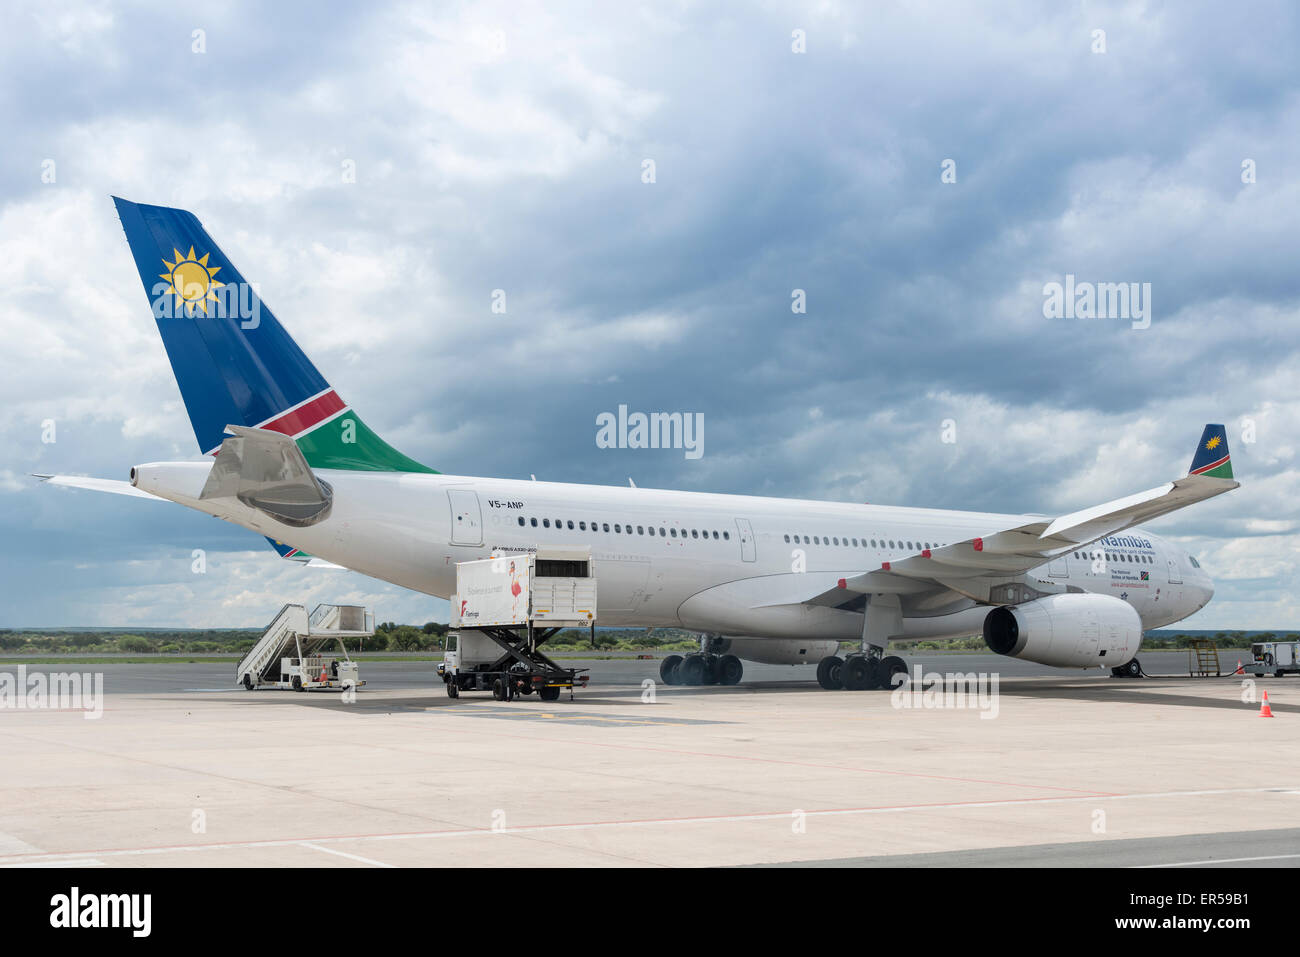 Air Namibia Airbus A330 on tarmac at Hosea Kutako International Airport, Windhoek (Windhuk), Khomas Region, Republic - Stock Image